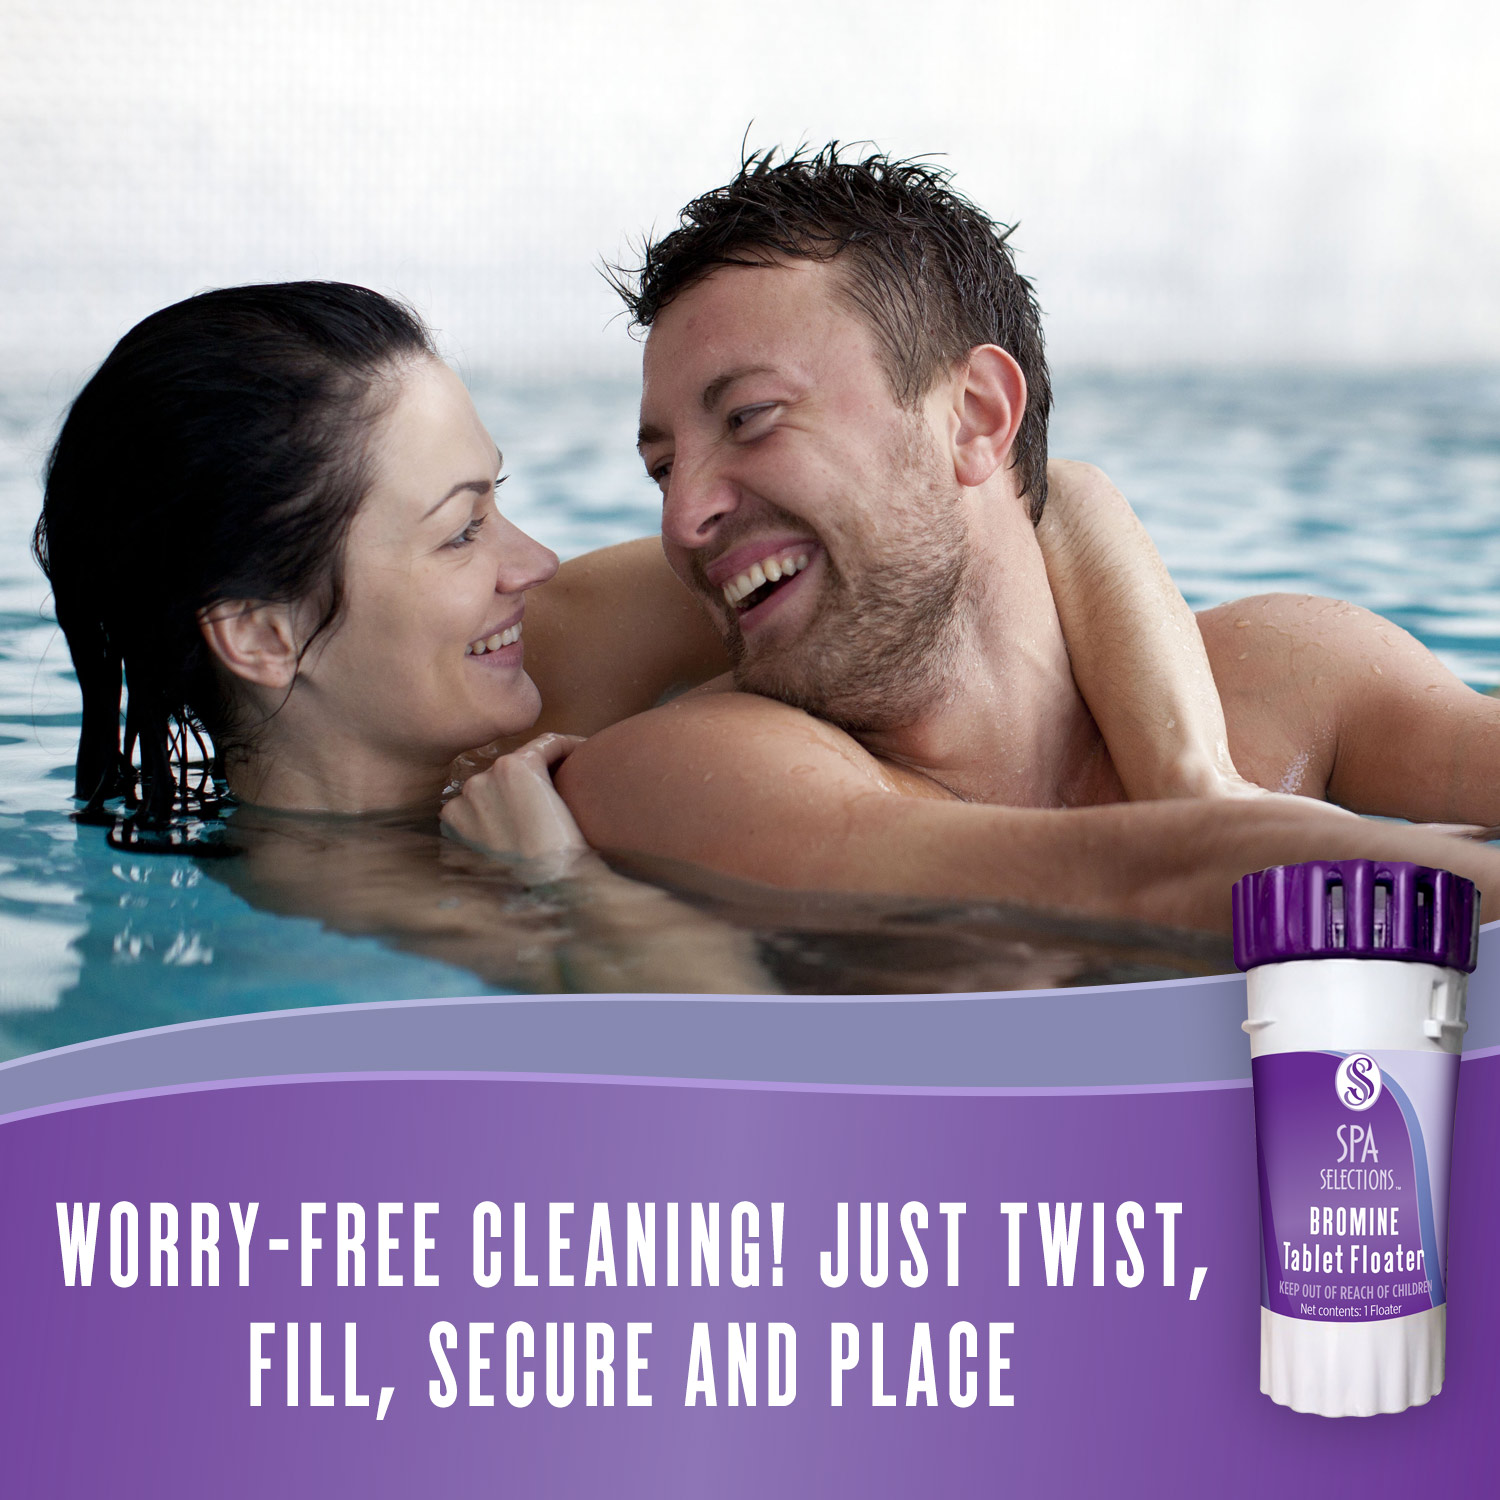 Couple laughing together in a hot tub. Worry-free cleaning with Spa Selections bromine tablet floater! Just twist, fill, secure and place!